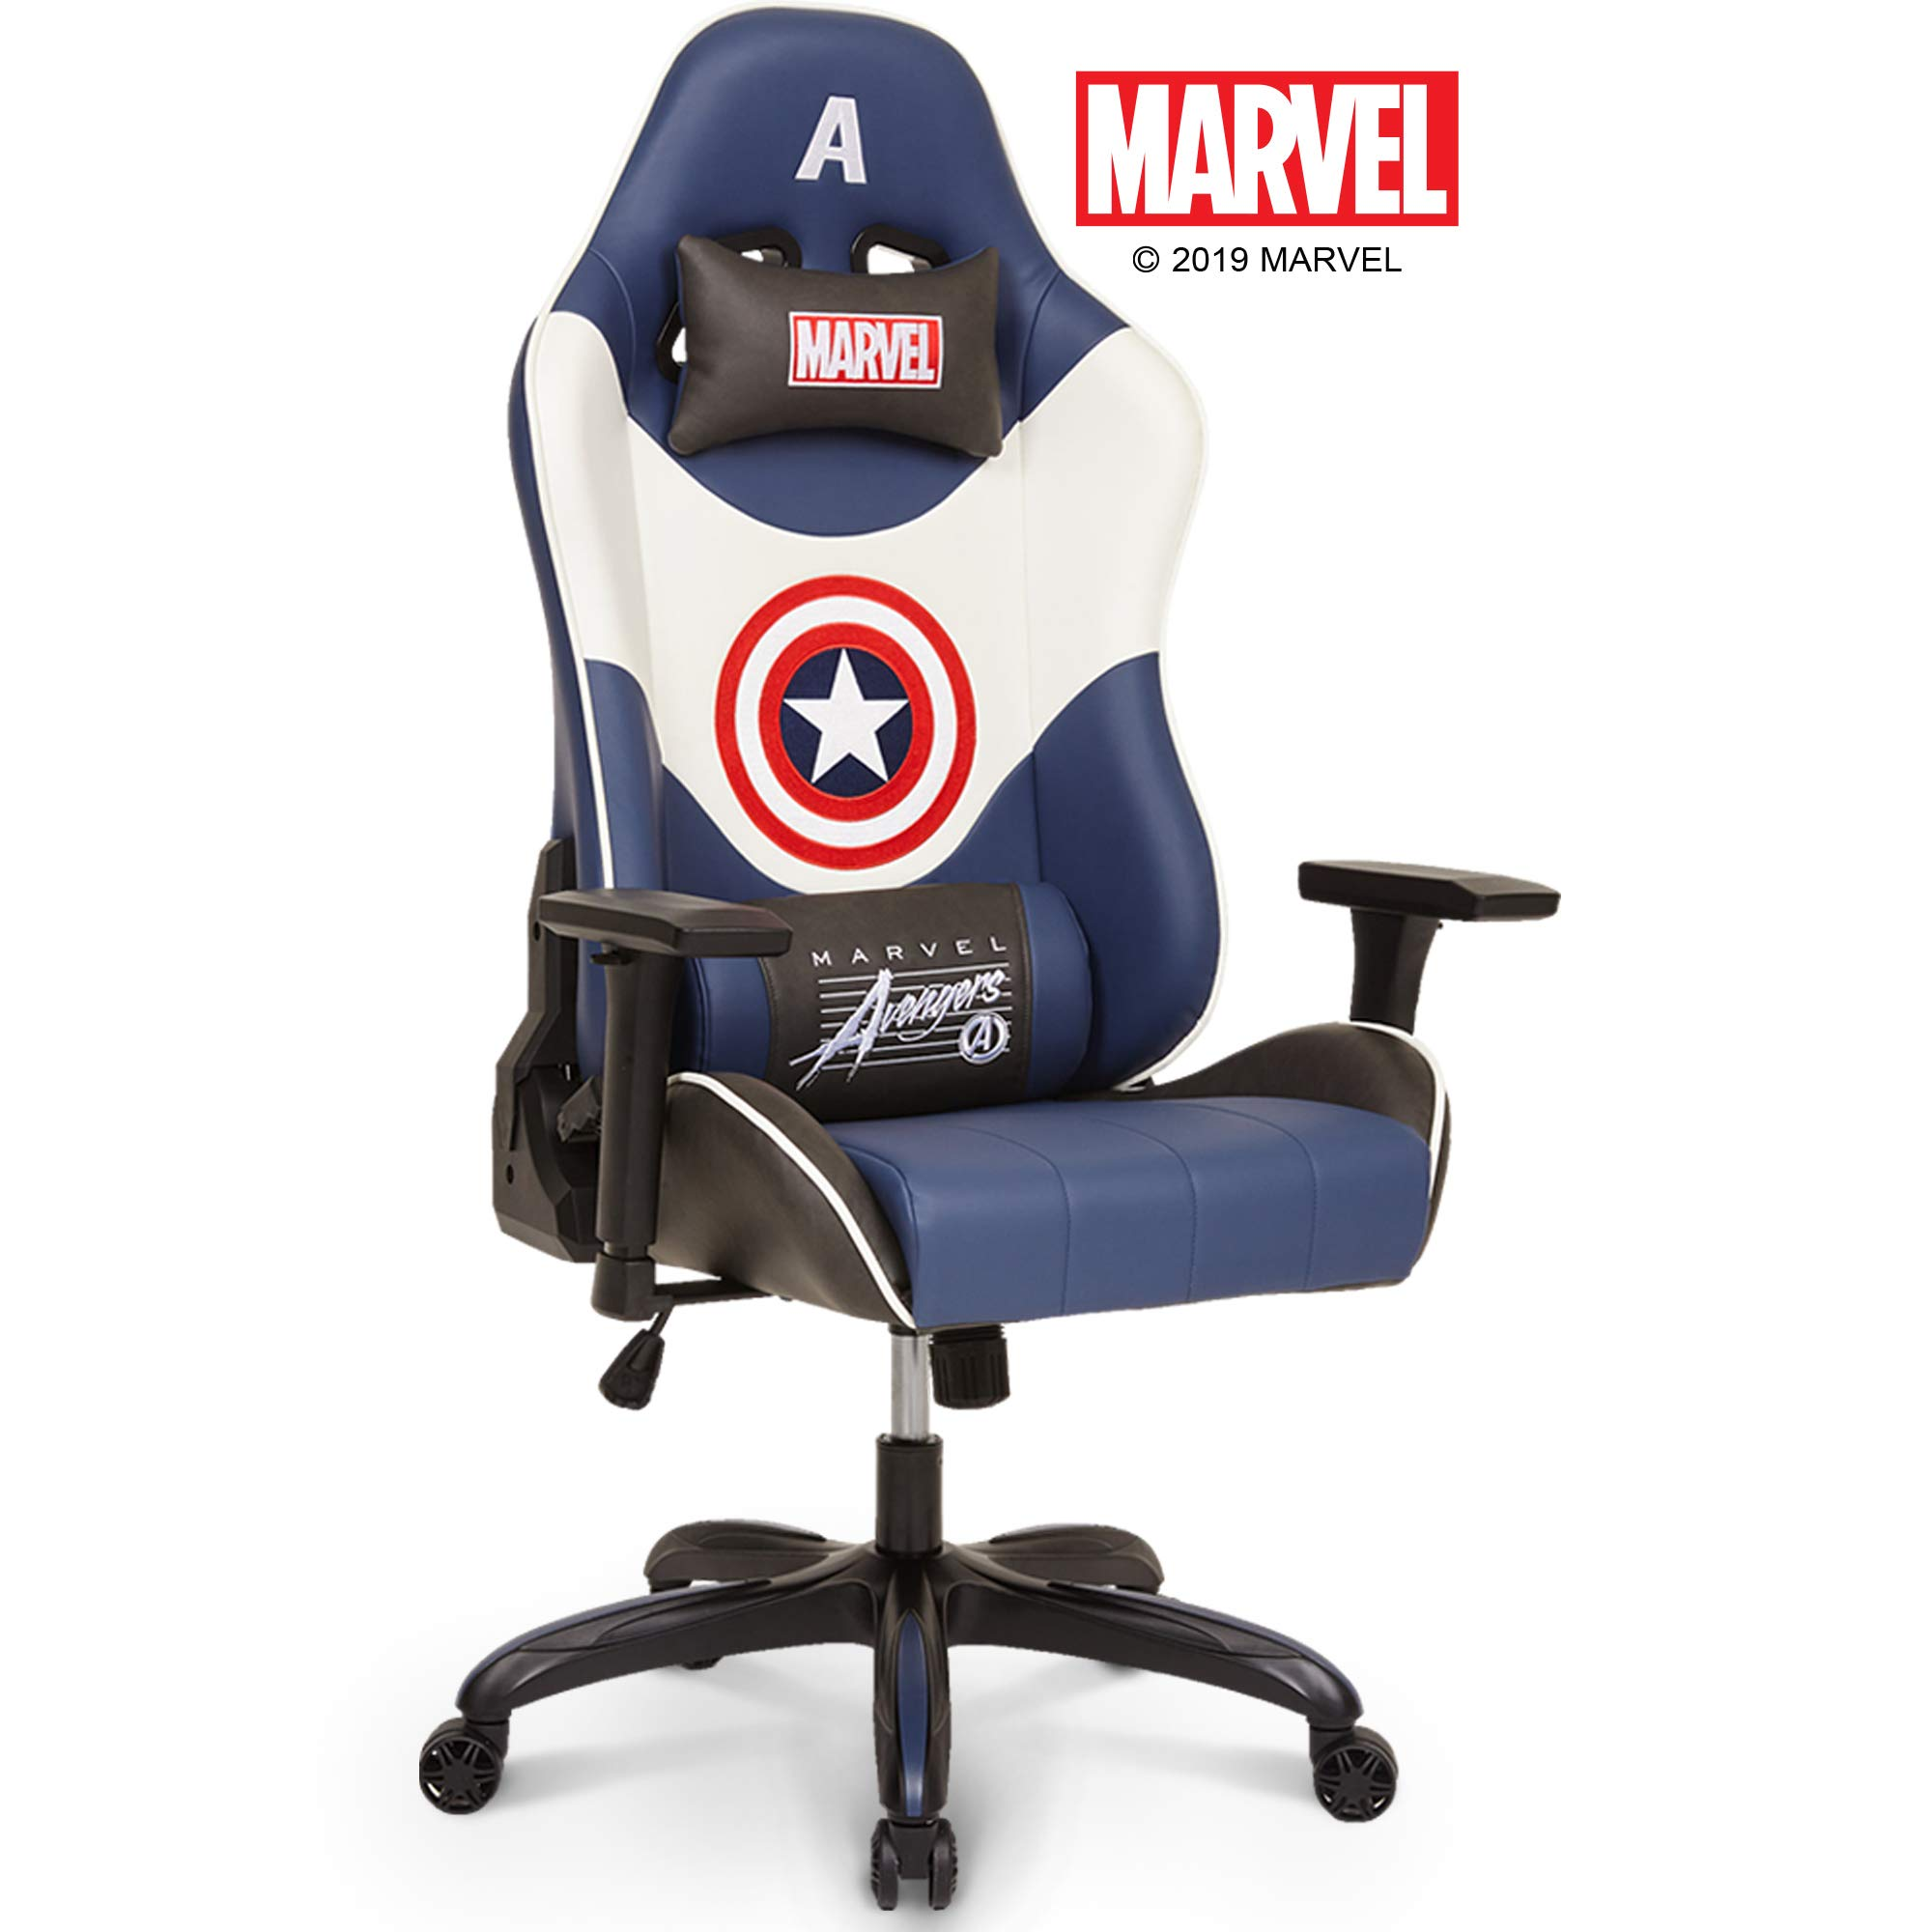 Neo Chair Licensed Marvel Captain America Gaming Chair 400 lb High End Ergonomic Neck Lumbar Support 4D Adjustable Armrest Recliner Computer Desk Office Executive Premium Leather Racing Chair, White by Neo Chair